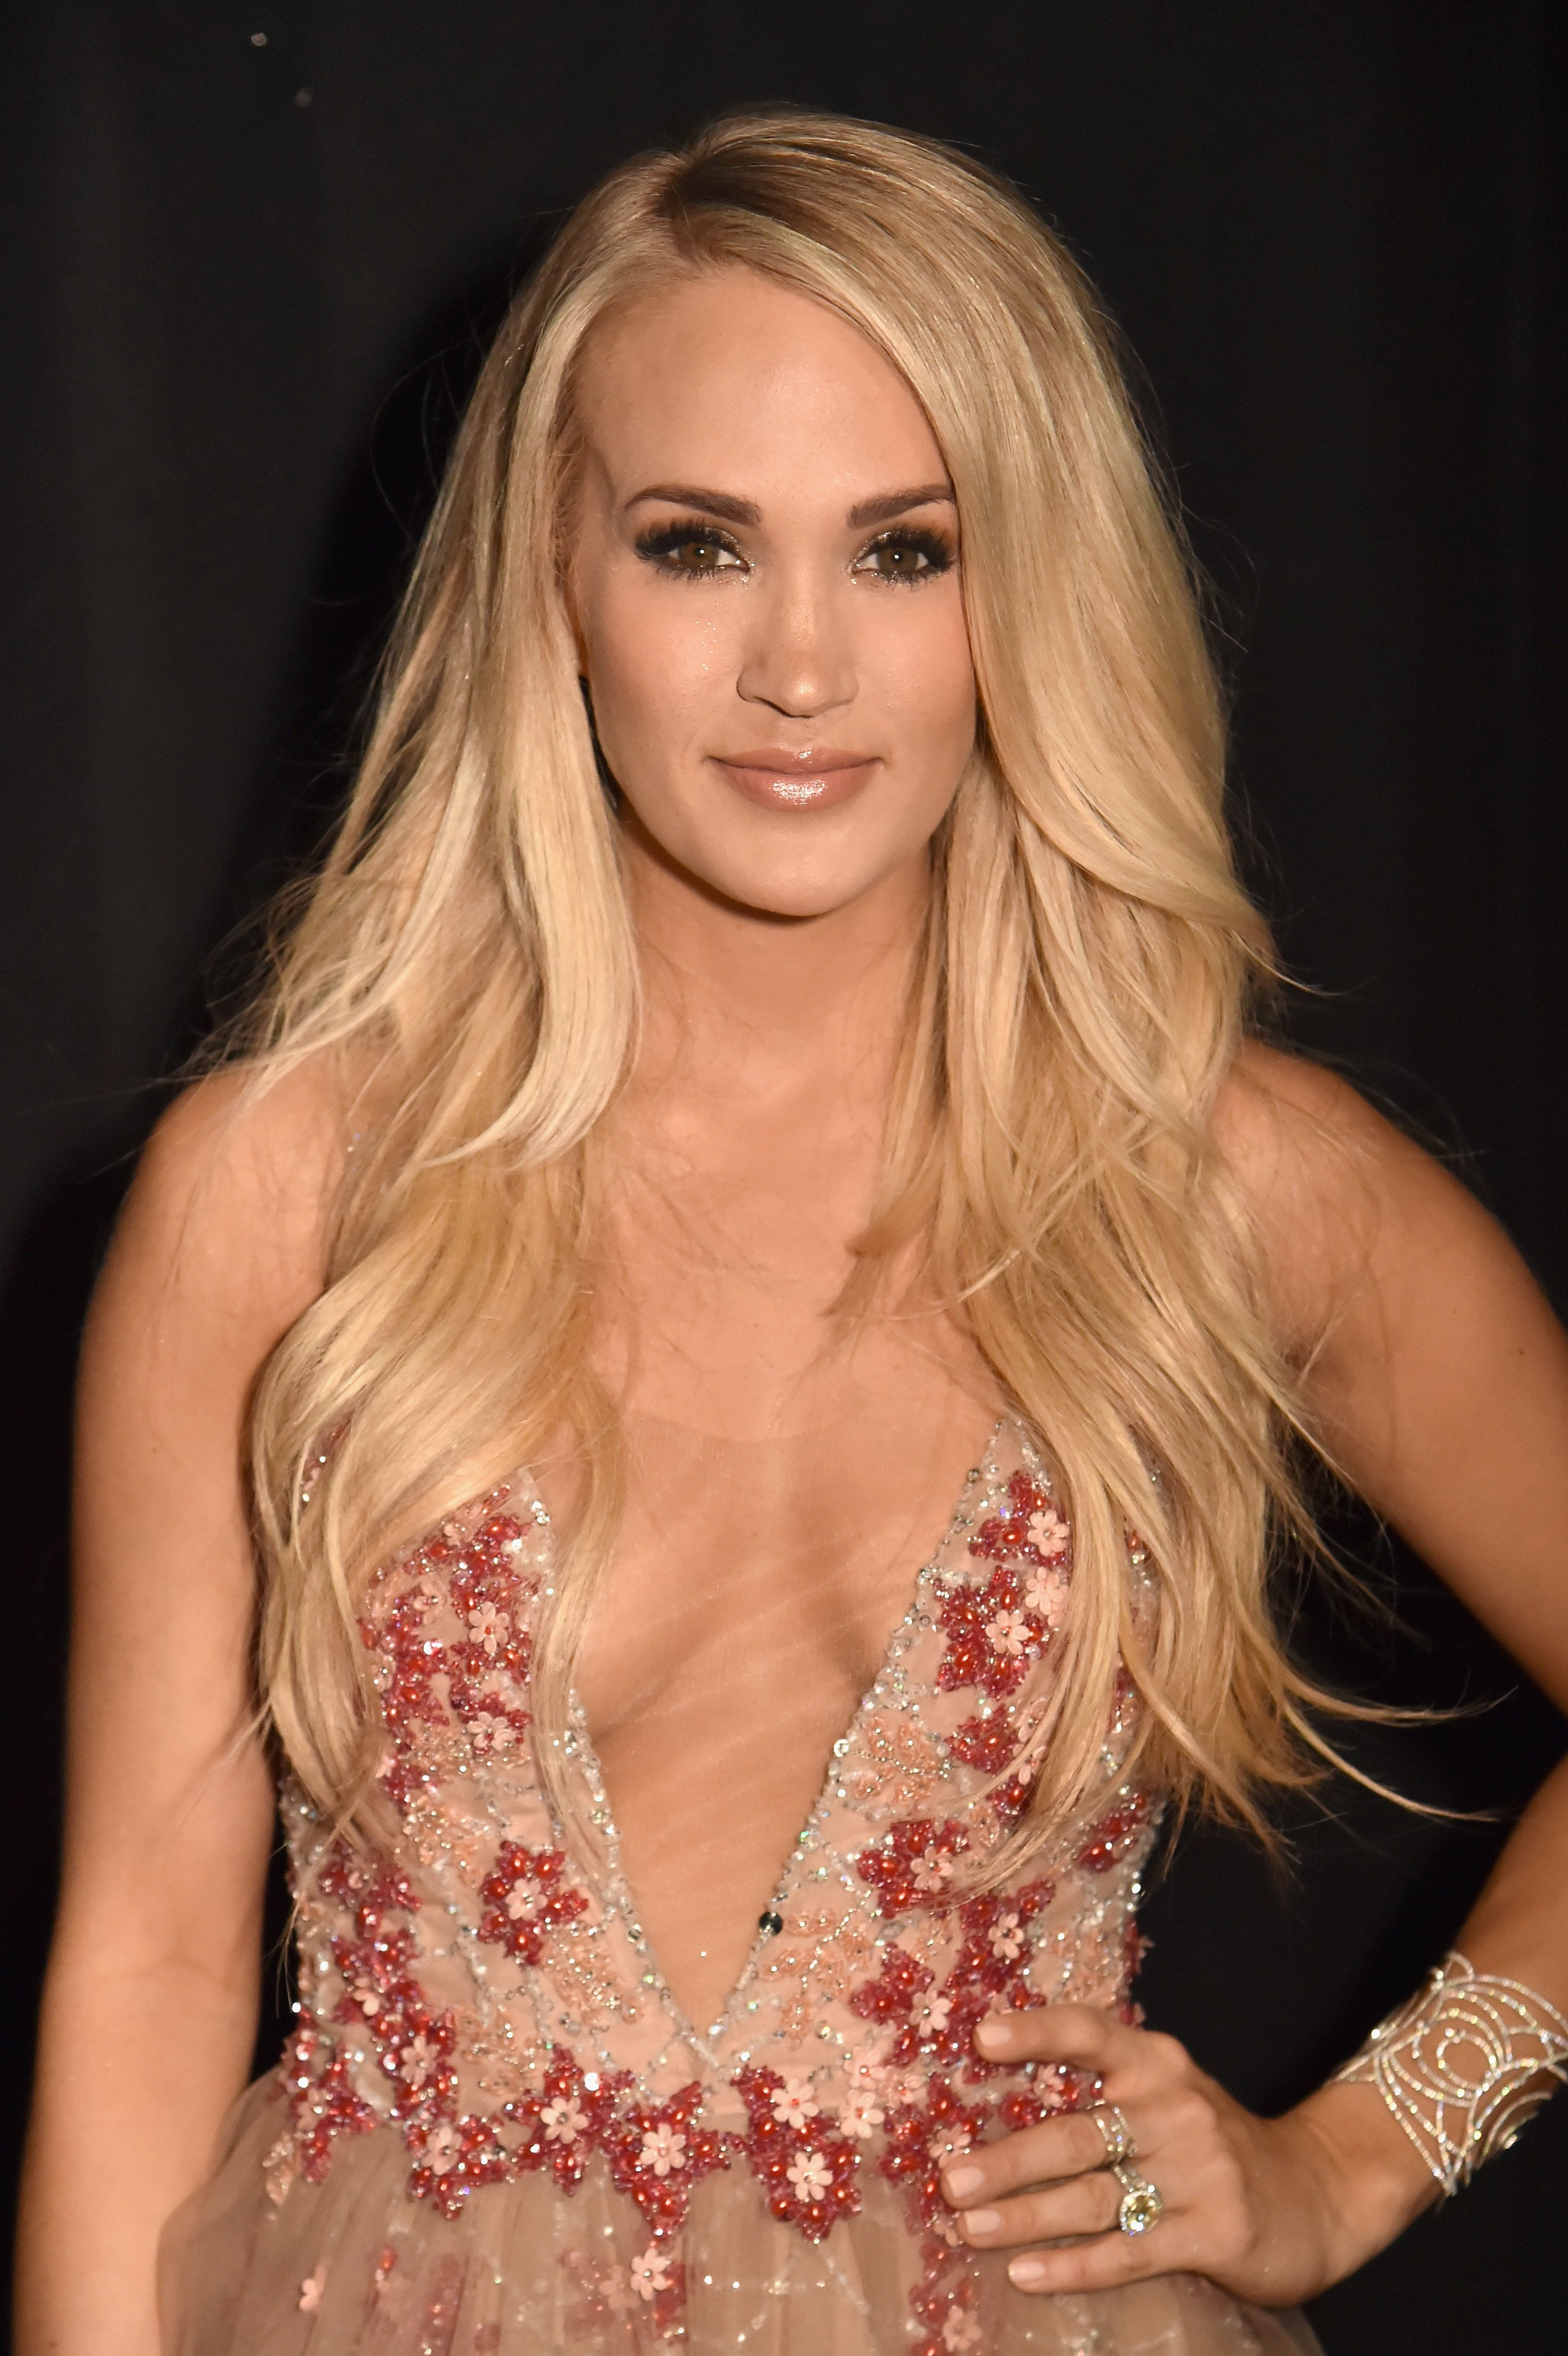 Carrie Underwood Finally Opens Up About The Accident That Left Her With 50 Stitches